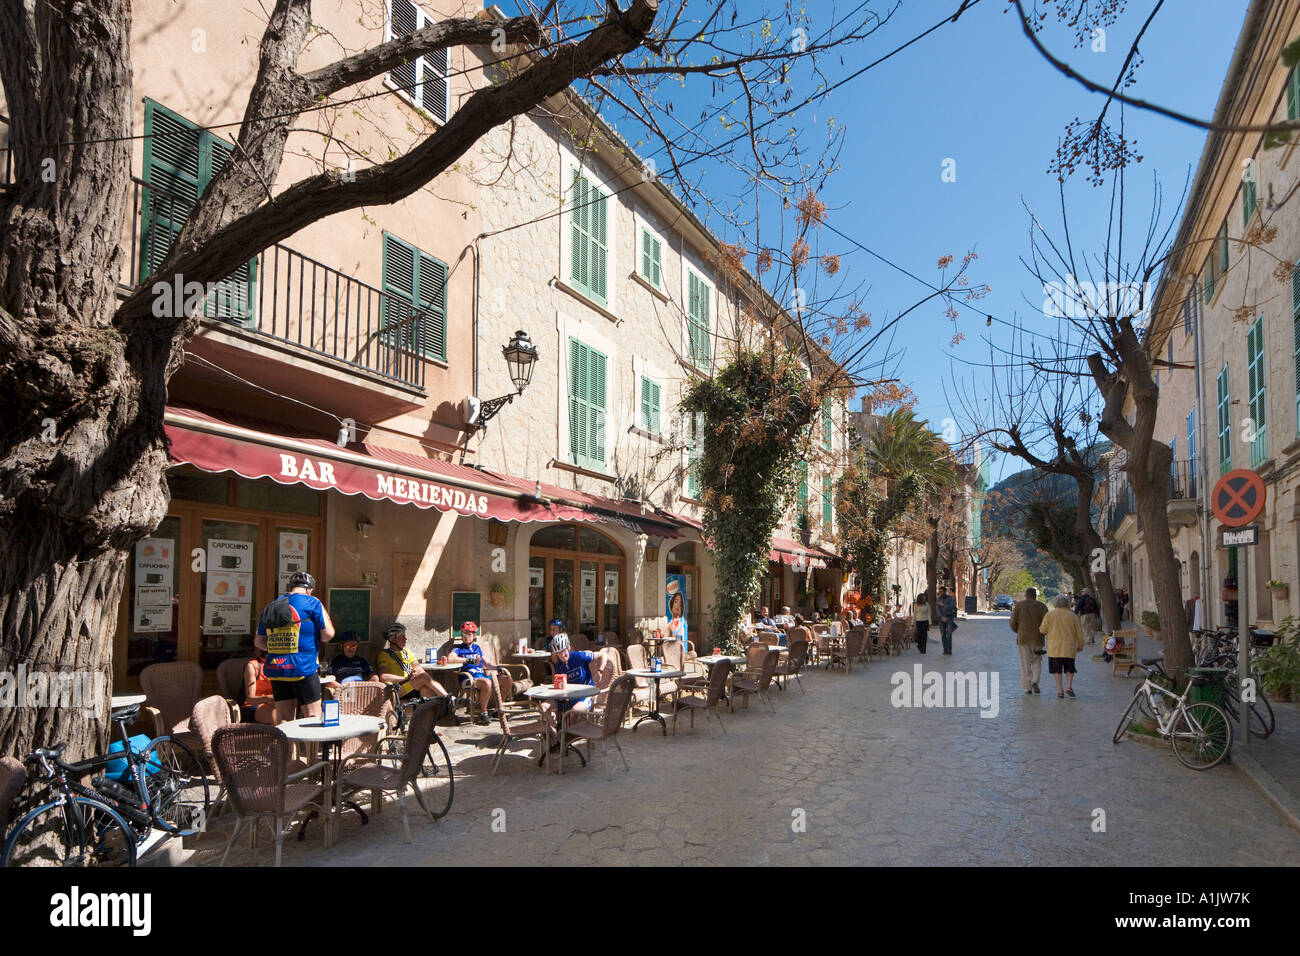 Cafes and Shops in the town centre, Valldemossa, Mallorca, Balearic Islands, Spain - Stock Image